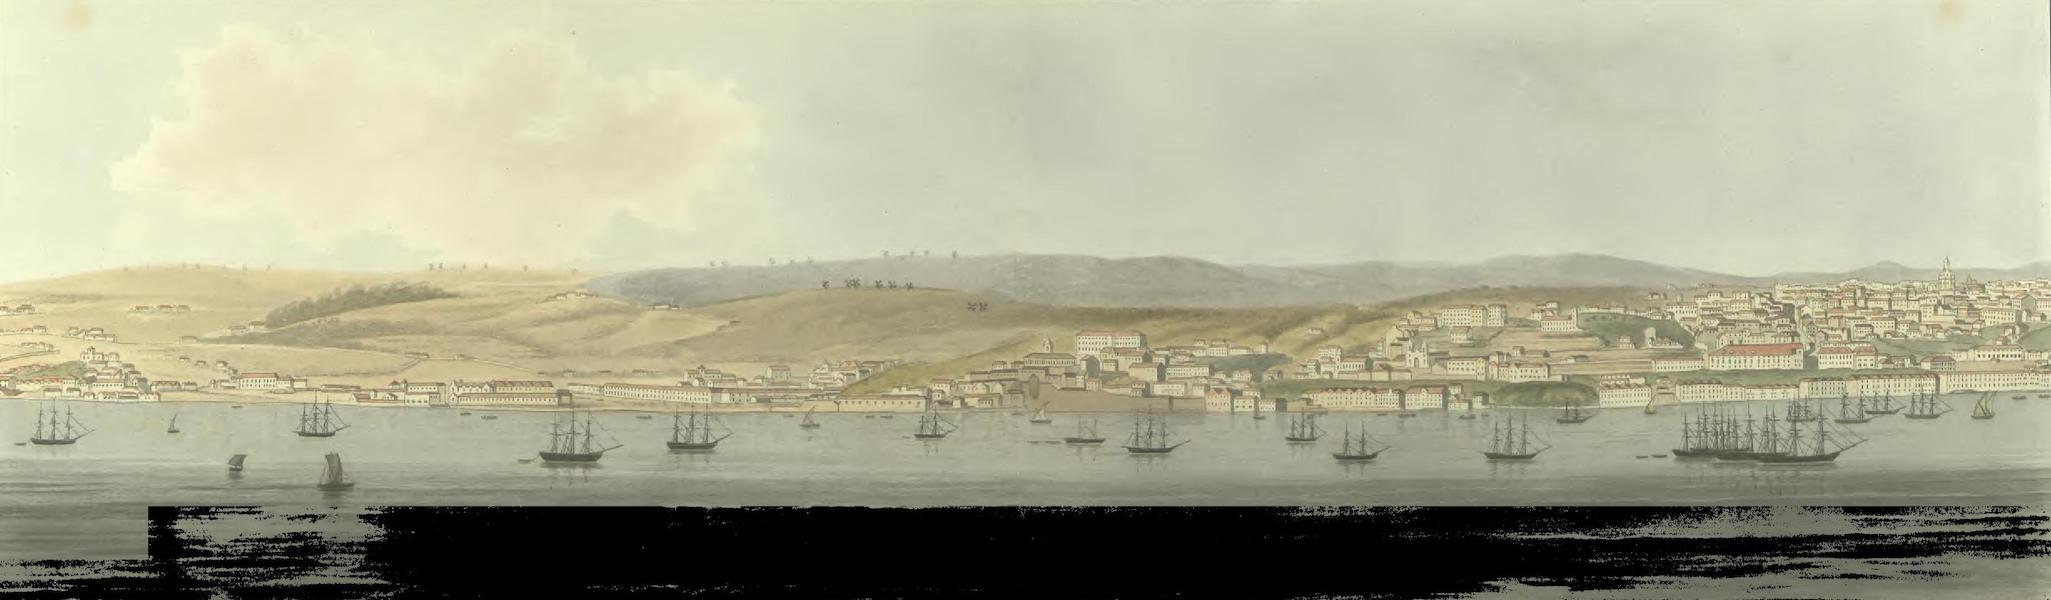 Historical, Military, and Picturesque Observations on Portugal Vol. 2 - Lisboa or Lisbon, the Capital of Portugal  (1818)